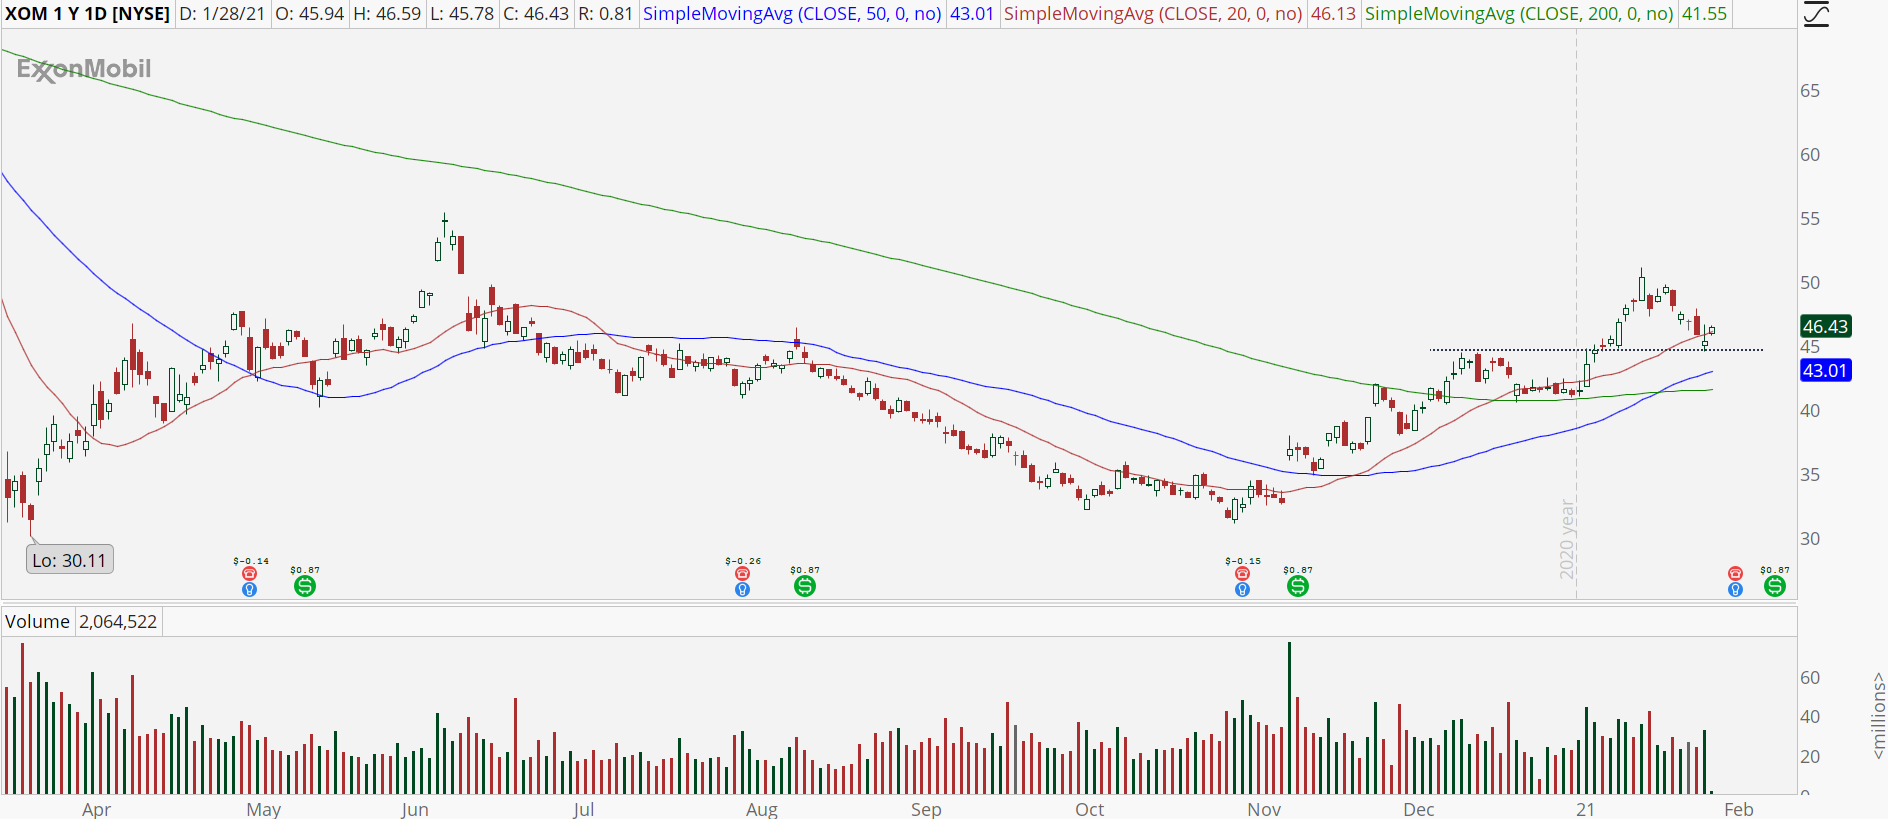 Exxon Mobil (XOM) stock chart with bull retracement